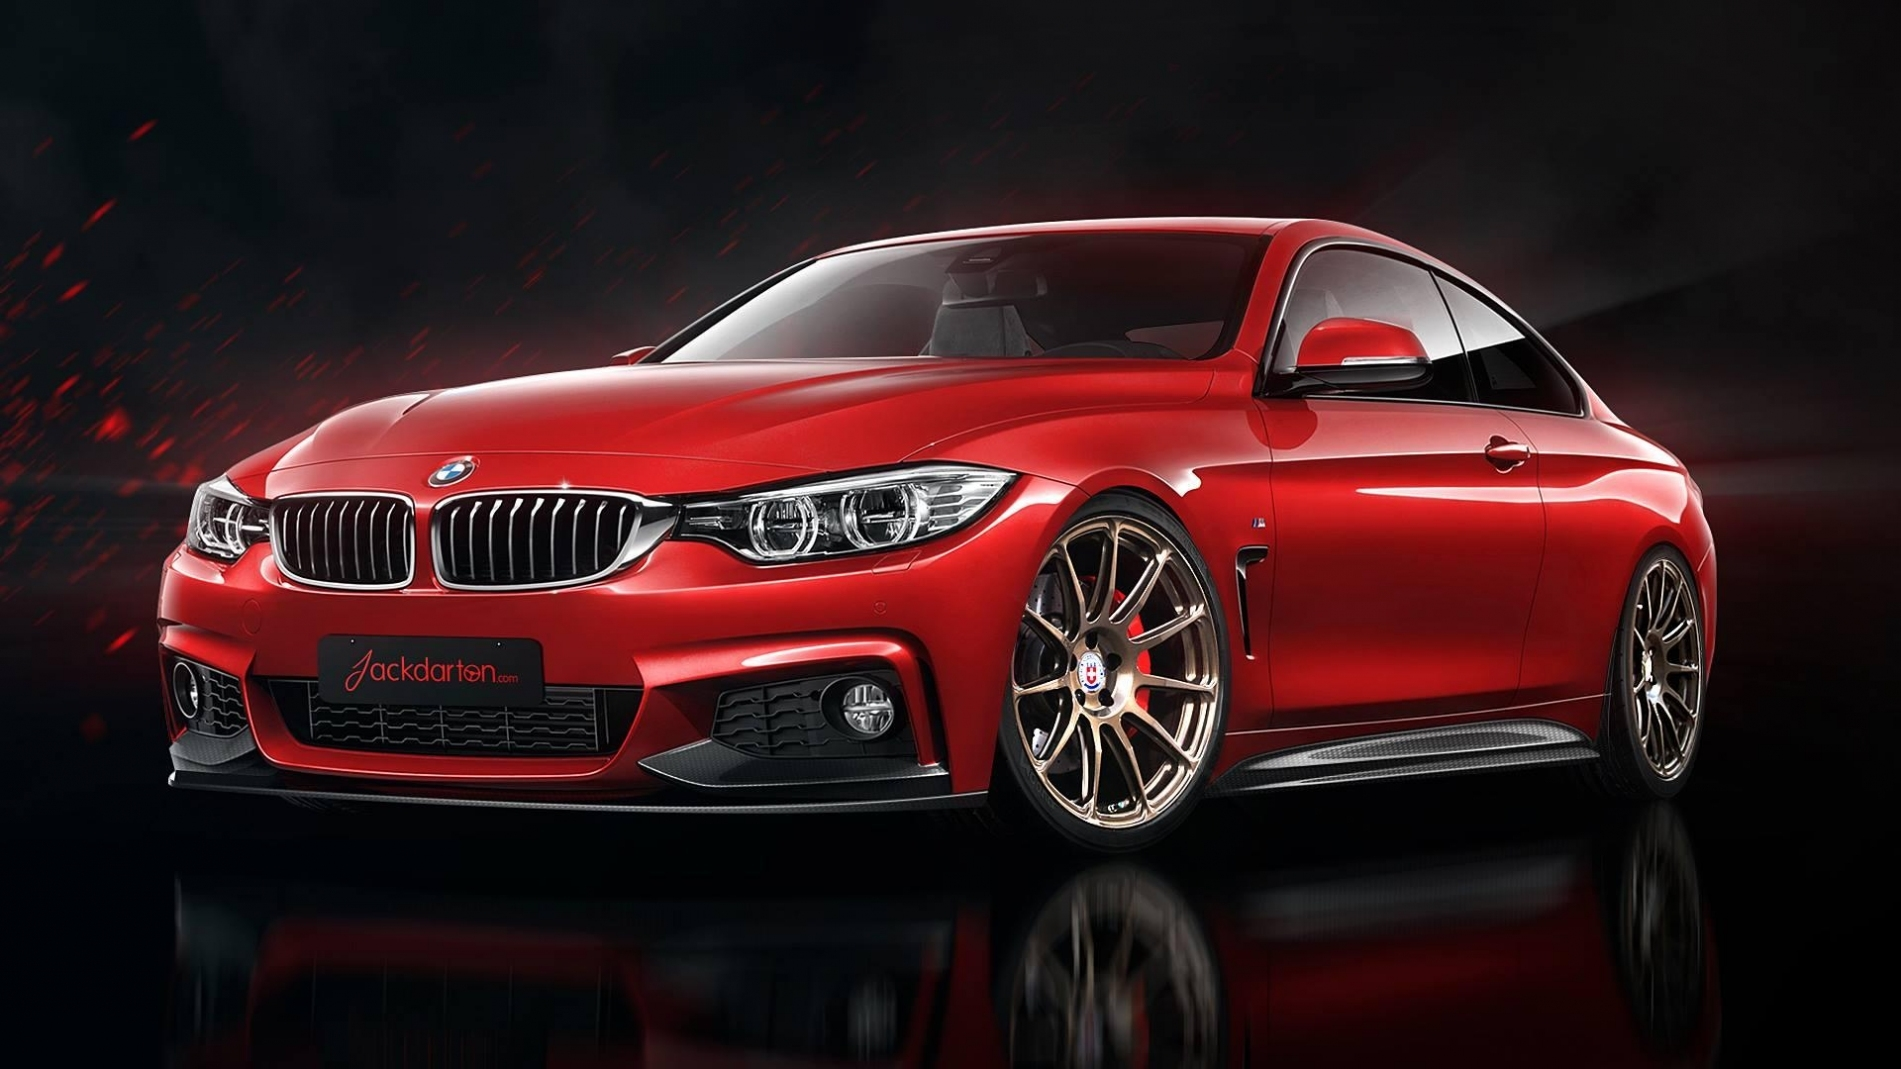 Beauty red bmw car wallpaper New Red Bmw Cars Wallpaper Free Download #1790 Wallpaper | High Elegant red bmw car wallpaper  Cars Wallpapers